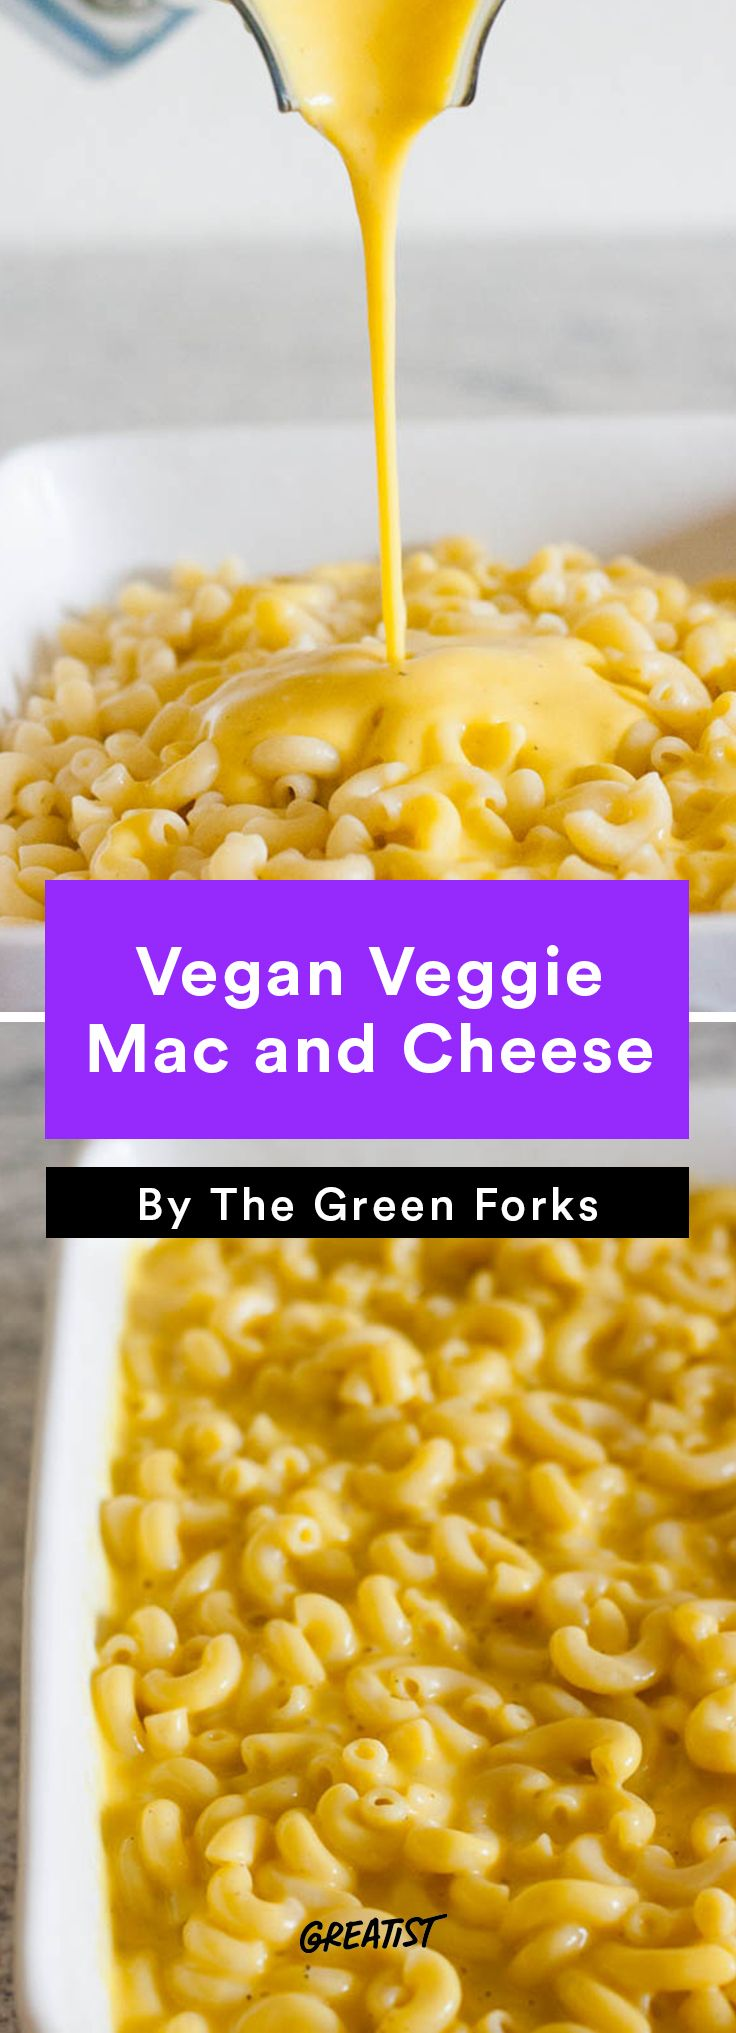 no dairy mac: Vegan Veggie Mac and Cheese